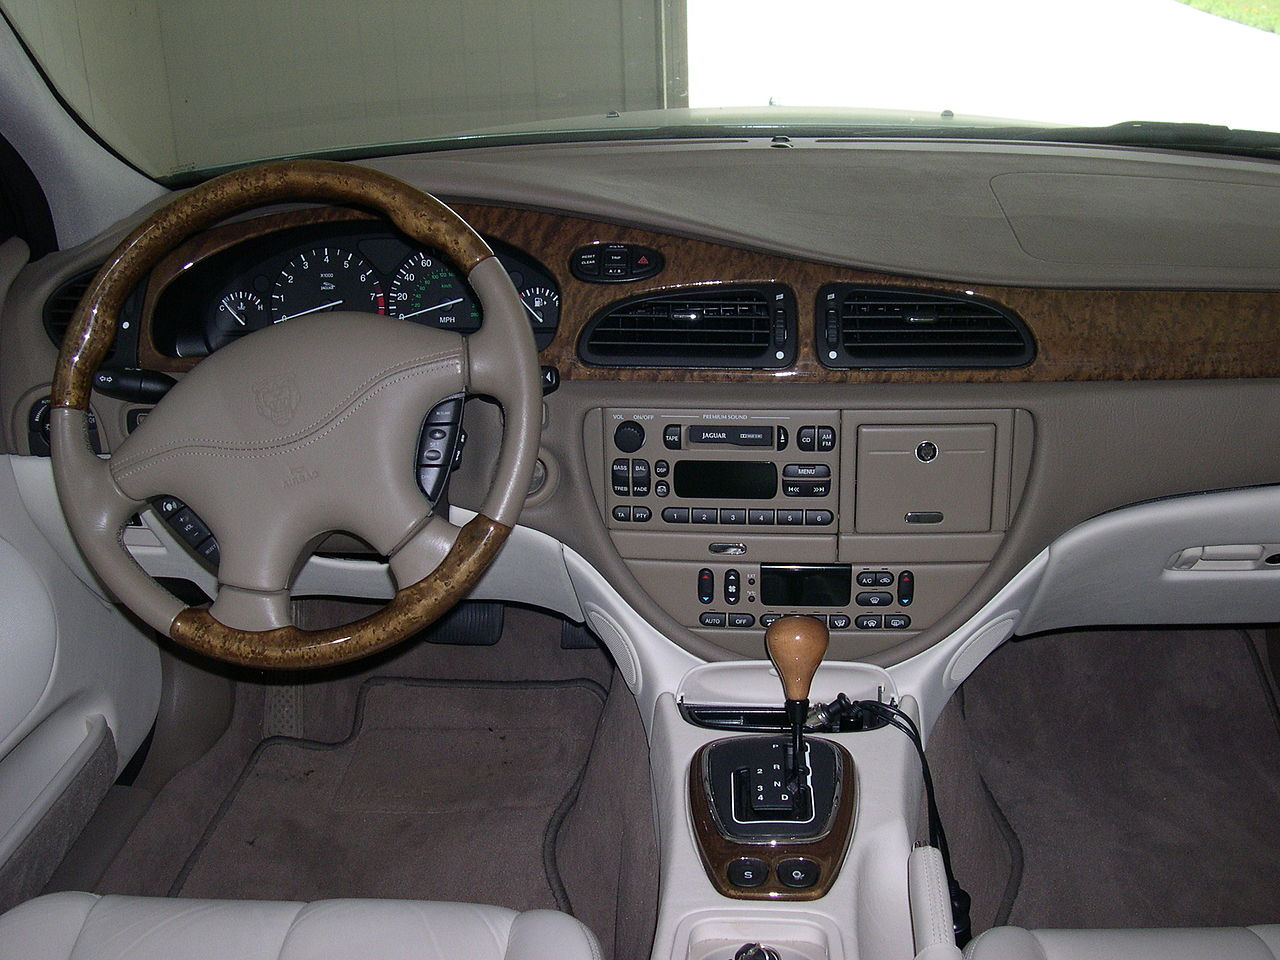 file:2001 jaguar s-type dashboard - wikimedia commons